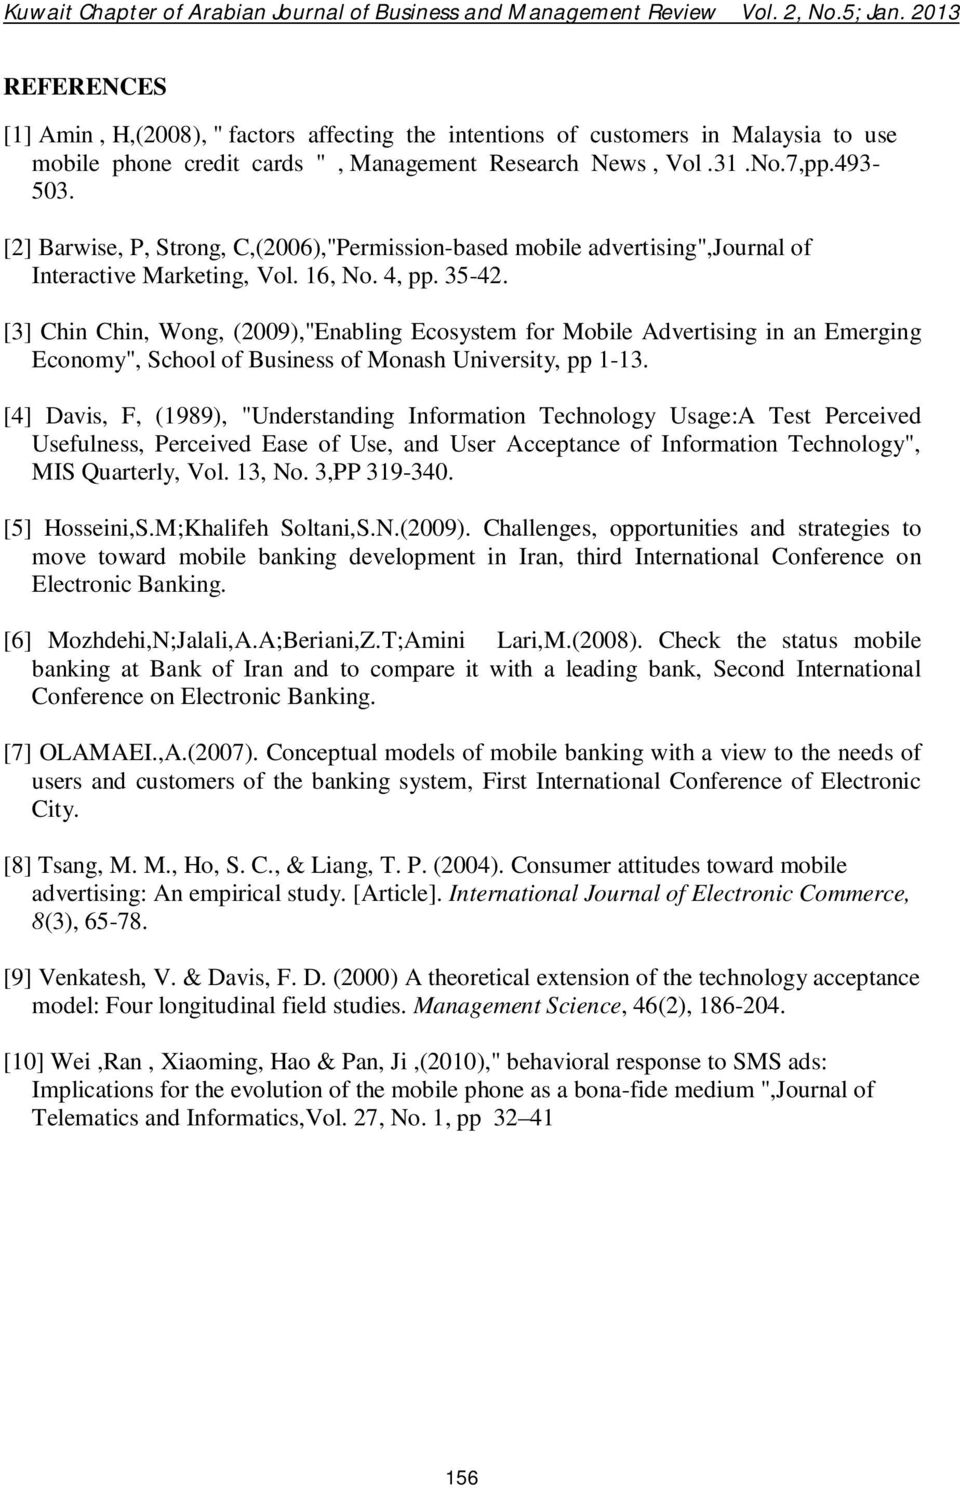 "[3] Chin Chin, Wong, (2009),""Enabling Ecosystem for Mobile Advertising in an Emerging Economy"", School of Business of Monash University, pp 1-13."